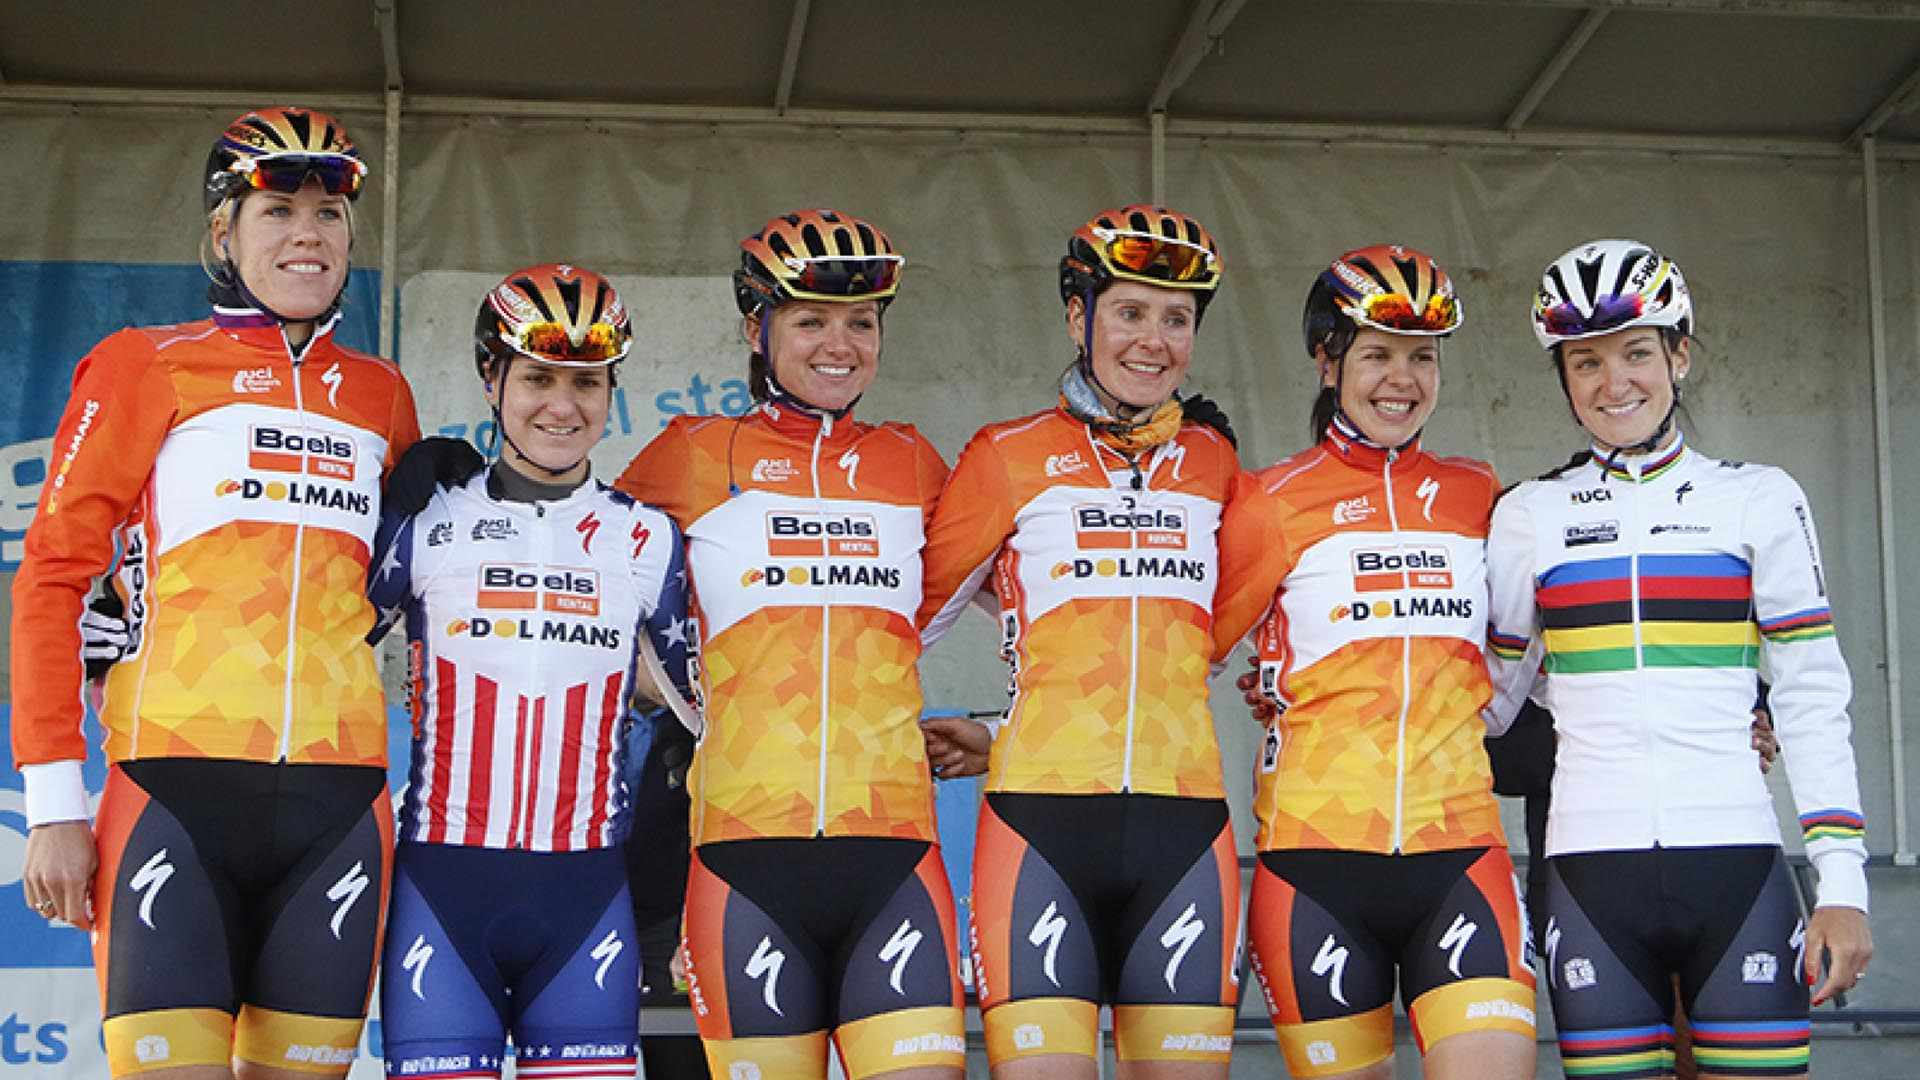 Nikki Harris, third from the right, pictured alongside her Boels-Dolmans teammates, which include Lizzie Armitstead, far right